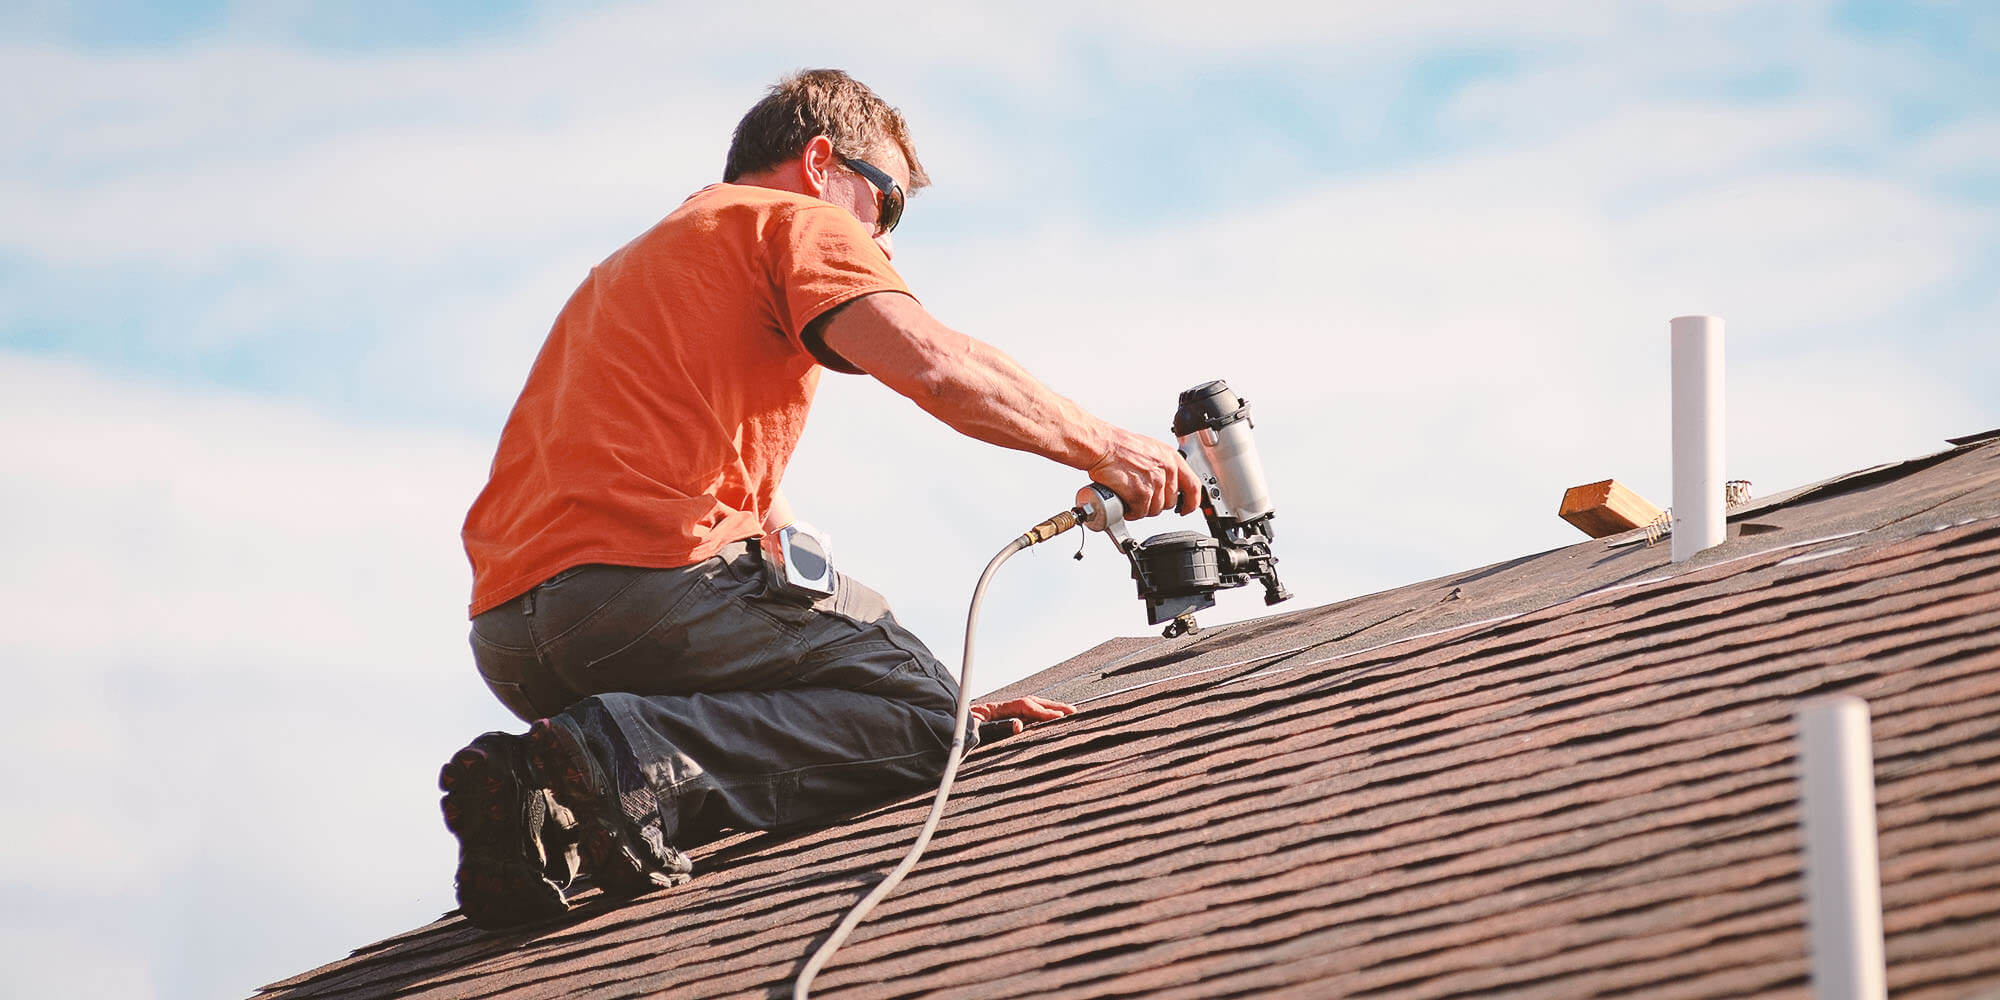 Roofing Contractors Oklahoma - Call The Professionals When You Find a Leak